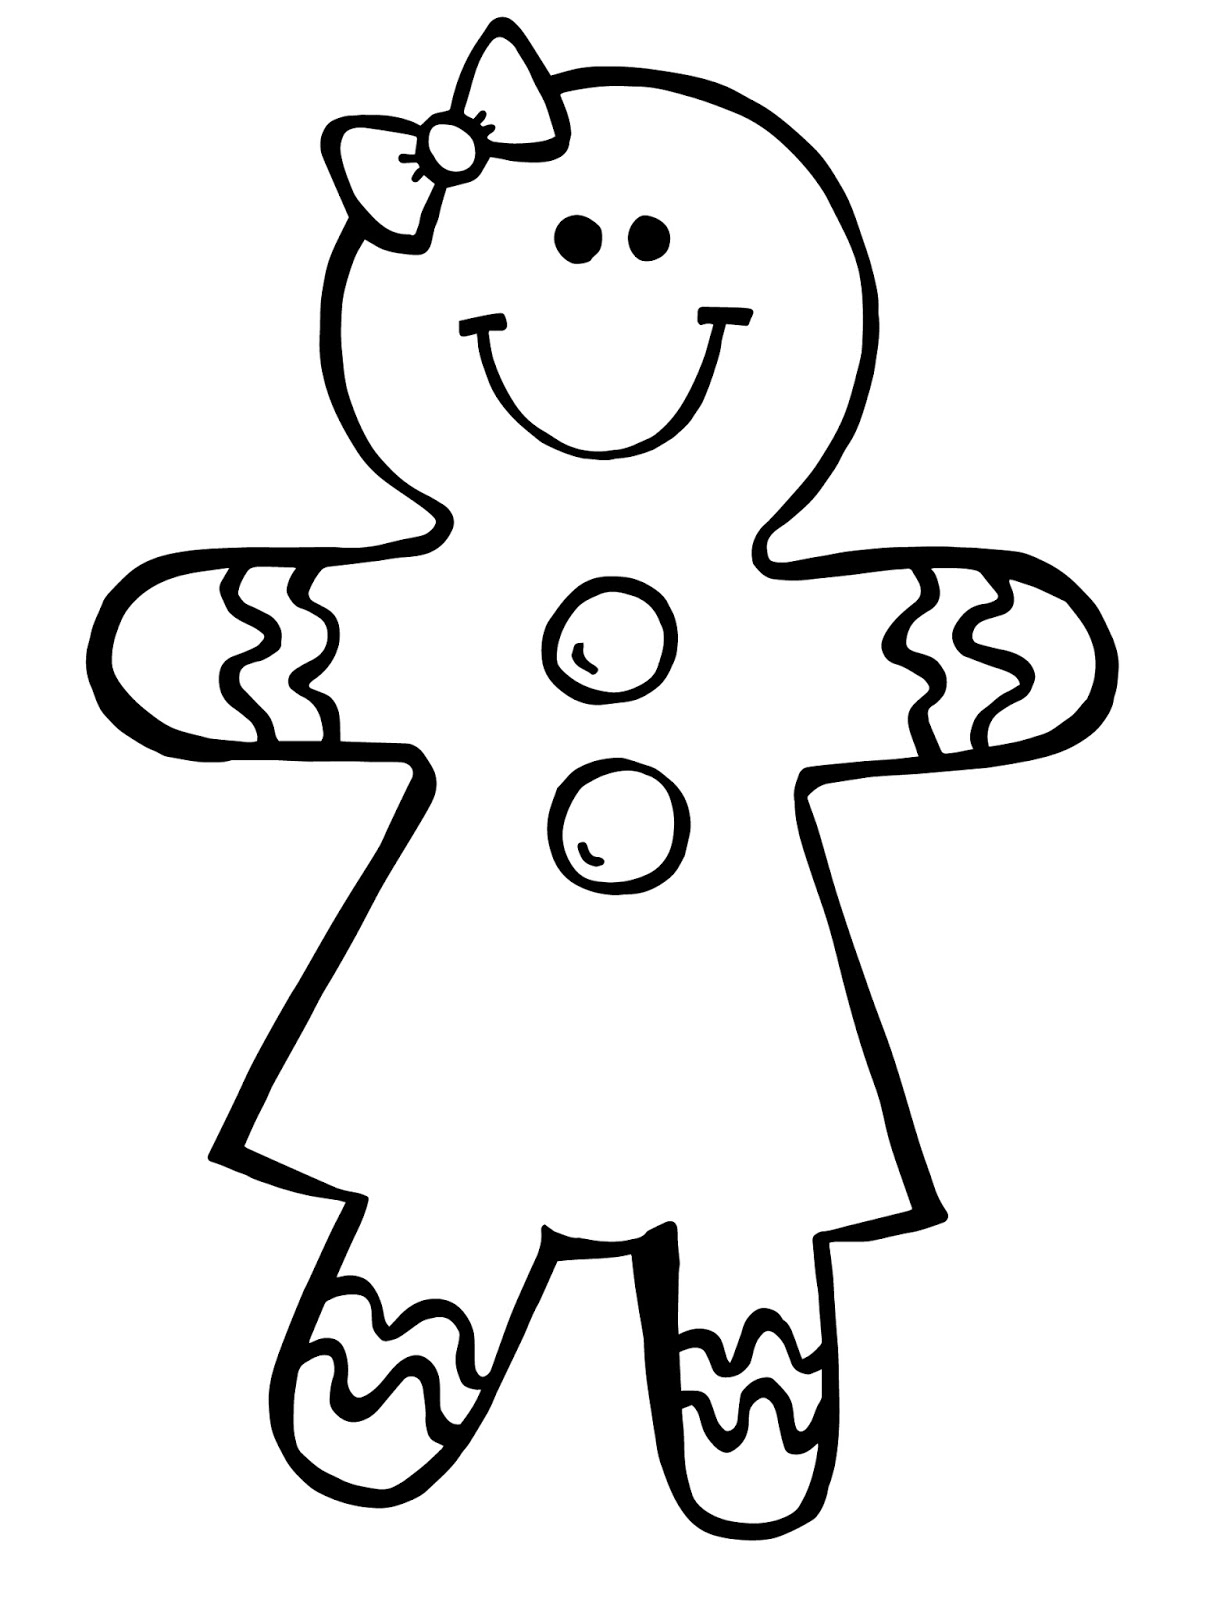 Free Snowman Clipart Black And White